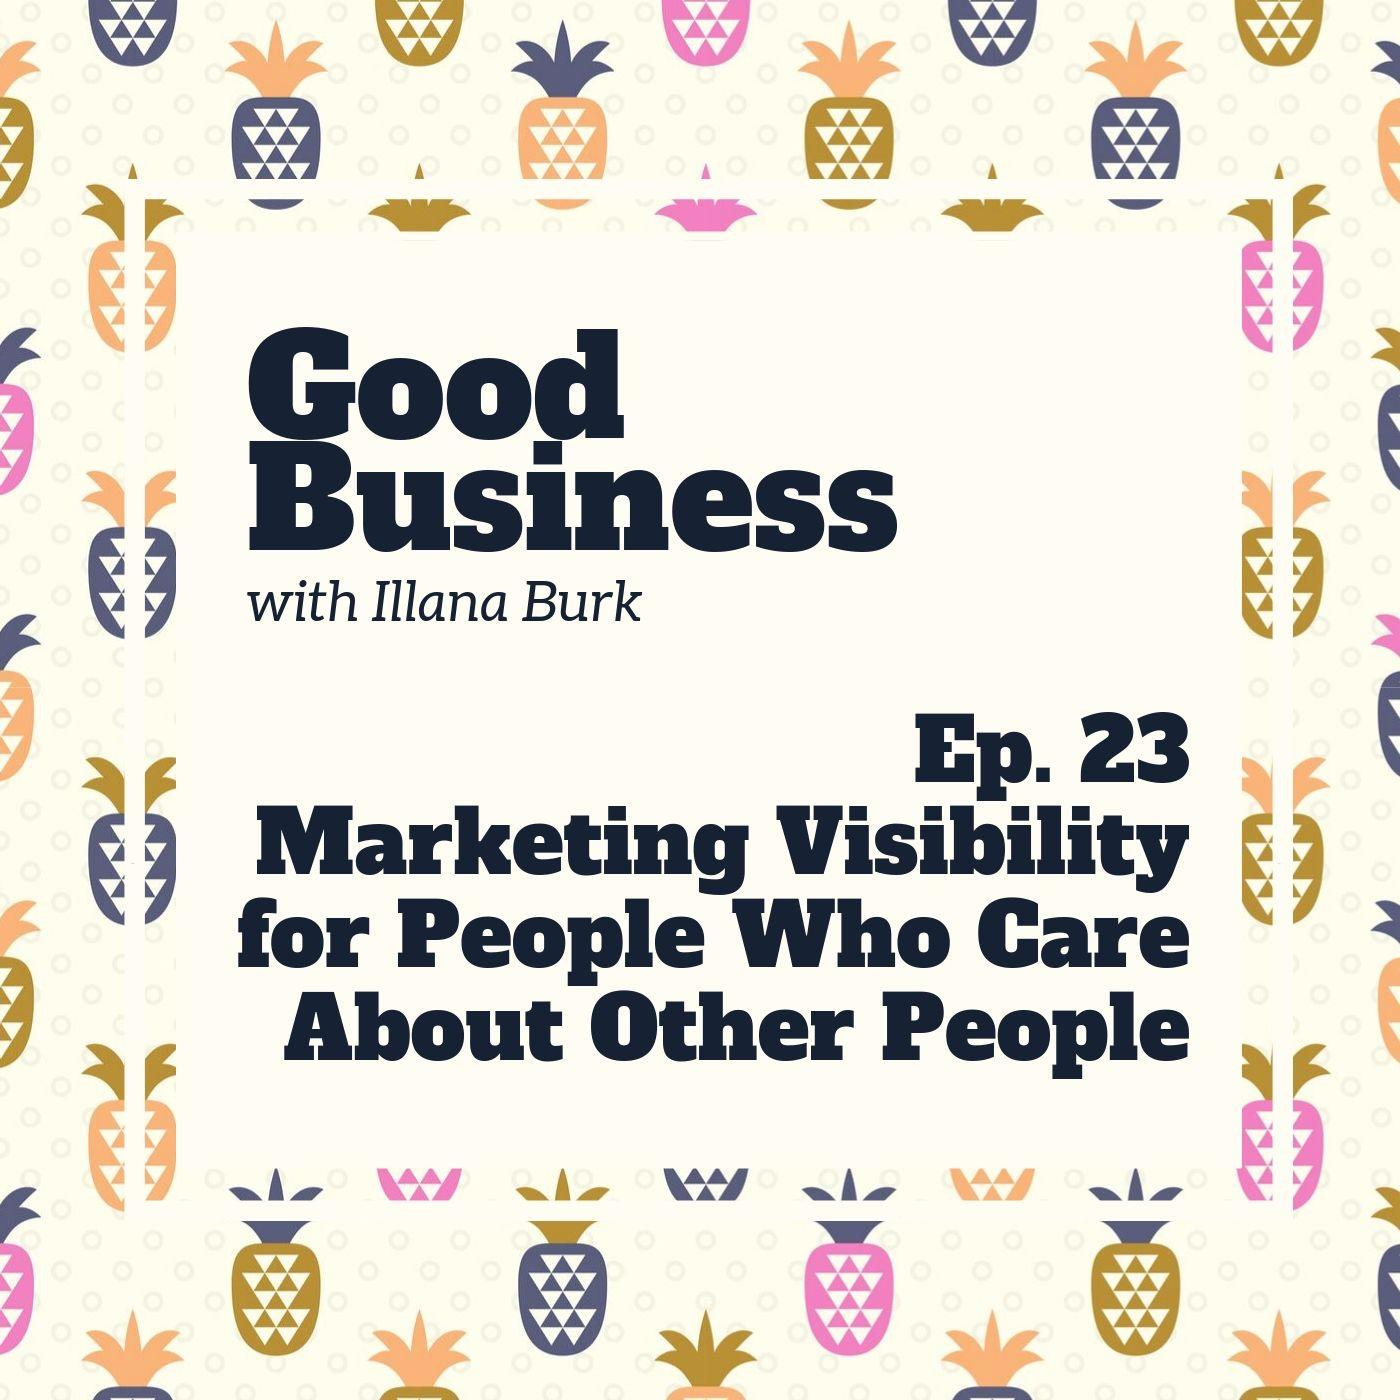 Market visibility for people who care about other people | GB 23